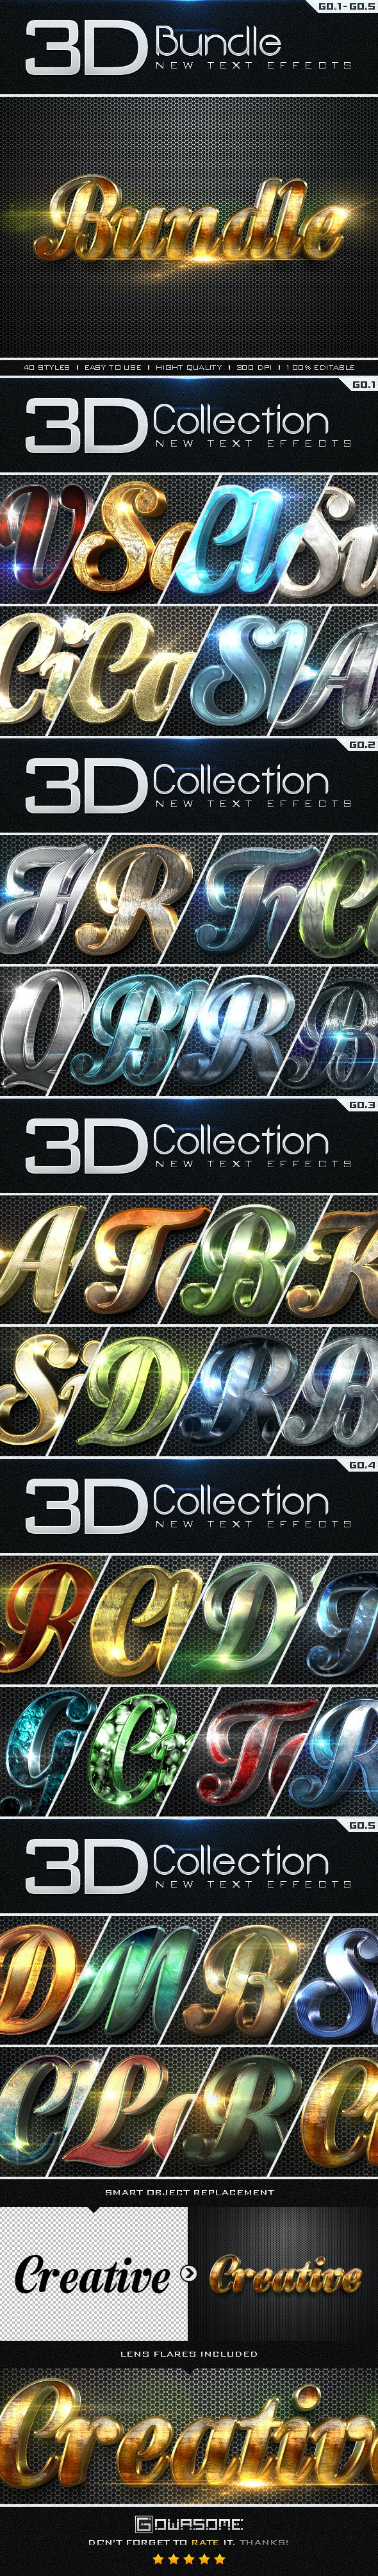 New 3D Collection Text Effects Bundle - Text Effects Styles